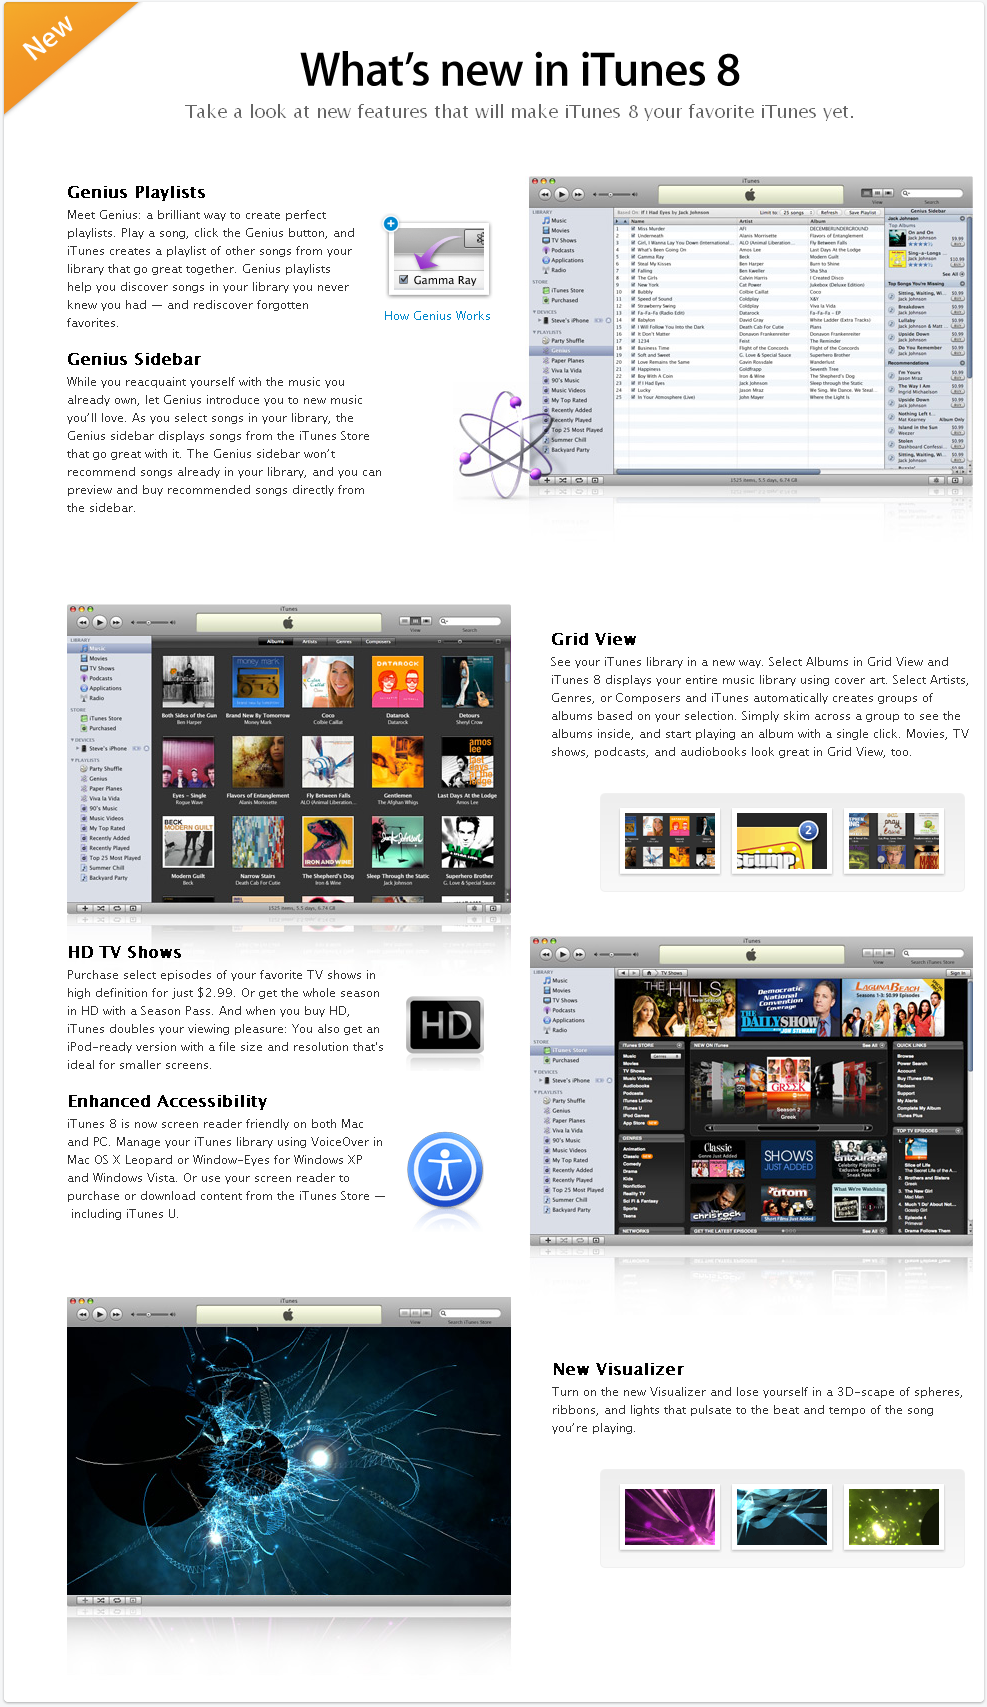 Website on the New Features of iTunes 8